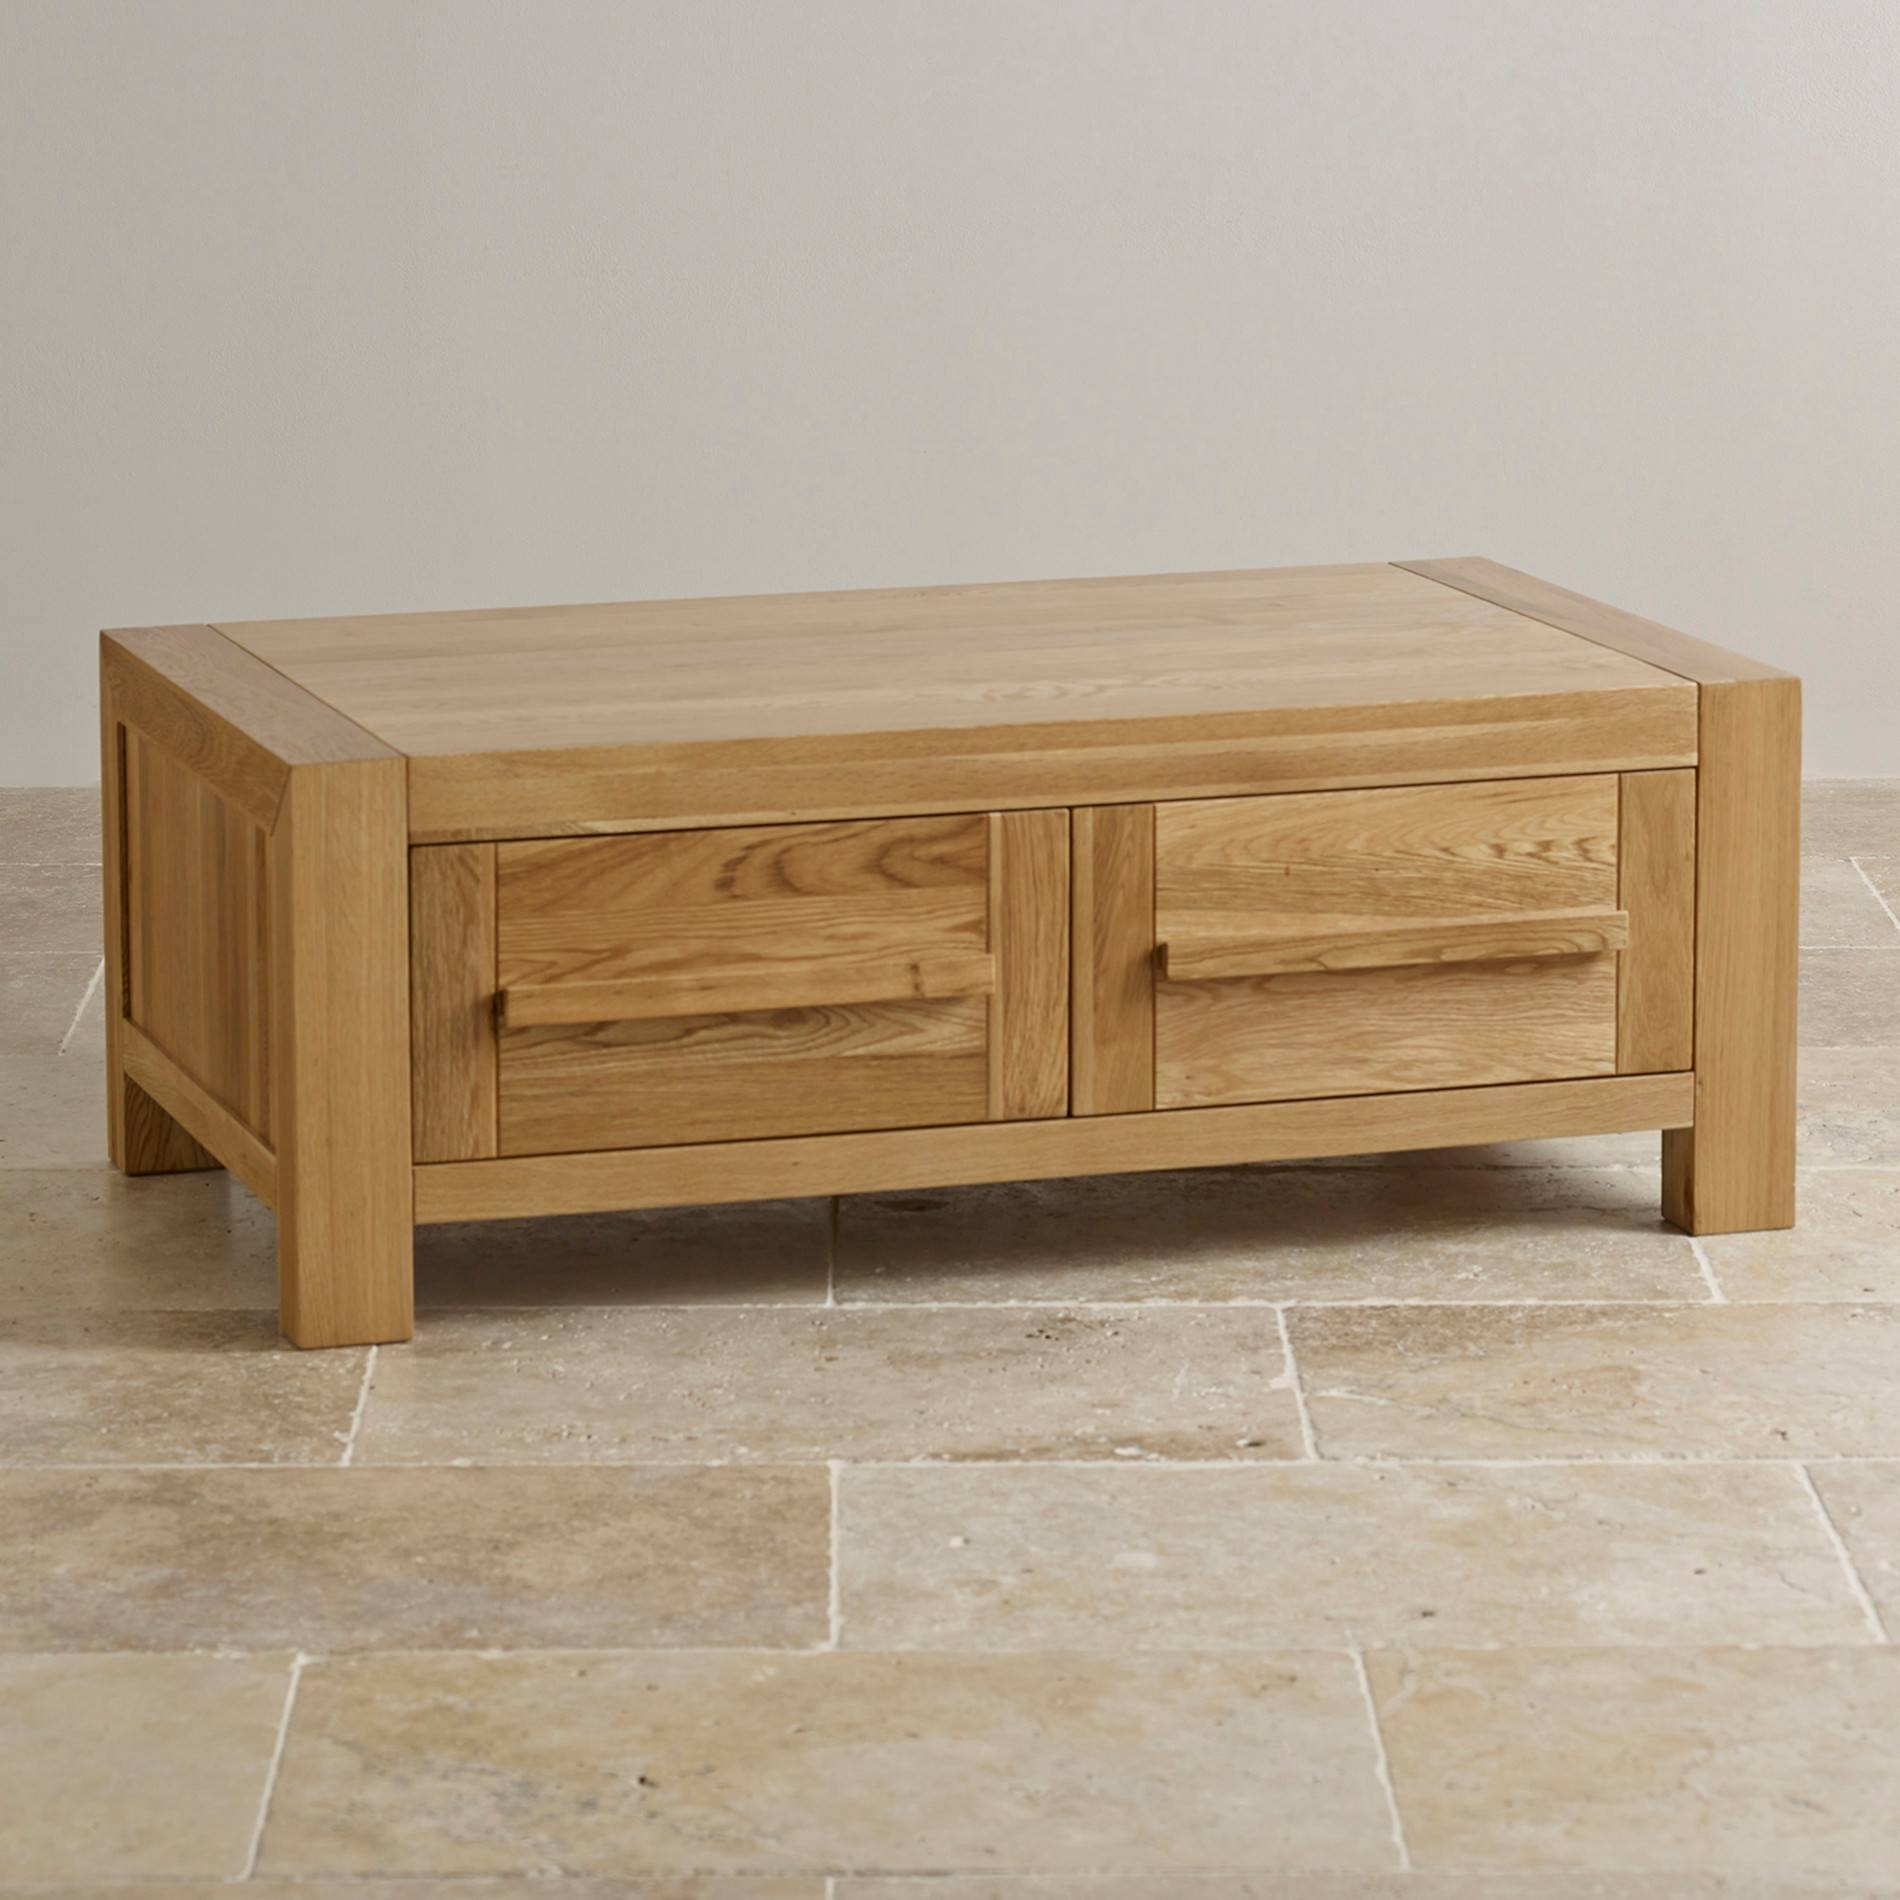 Fresco 2 Drawer Coffee Table In Solid Oak | Oak Furniture Land within Oak Coffee Tables With Storage (Image 4 of 15)